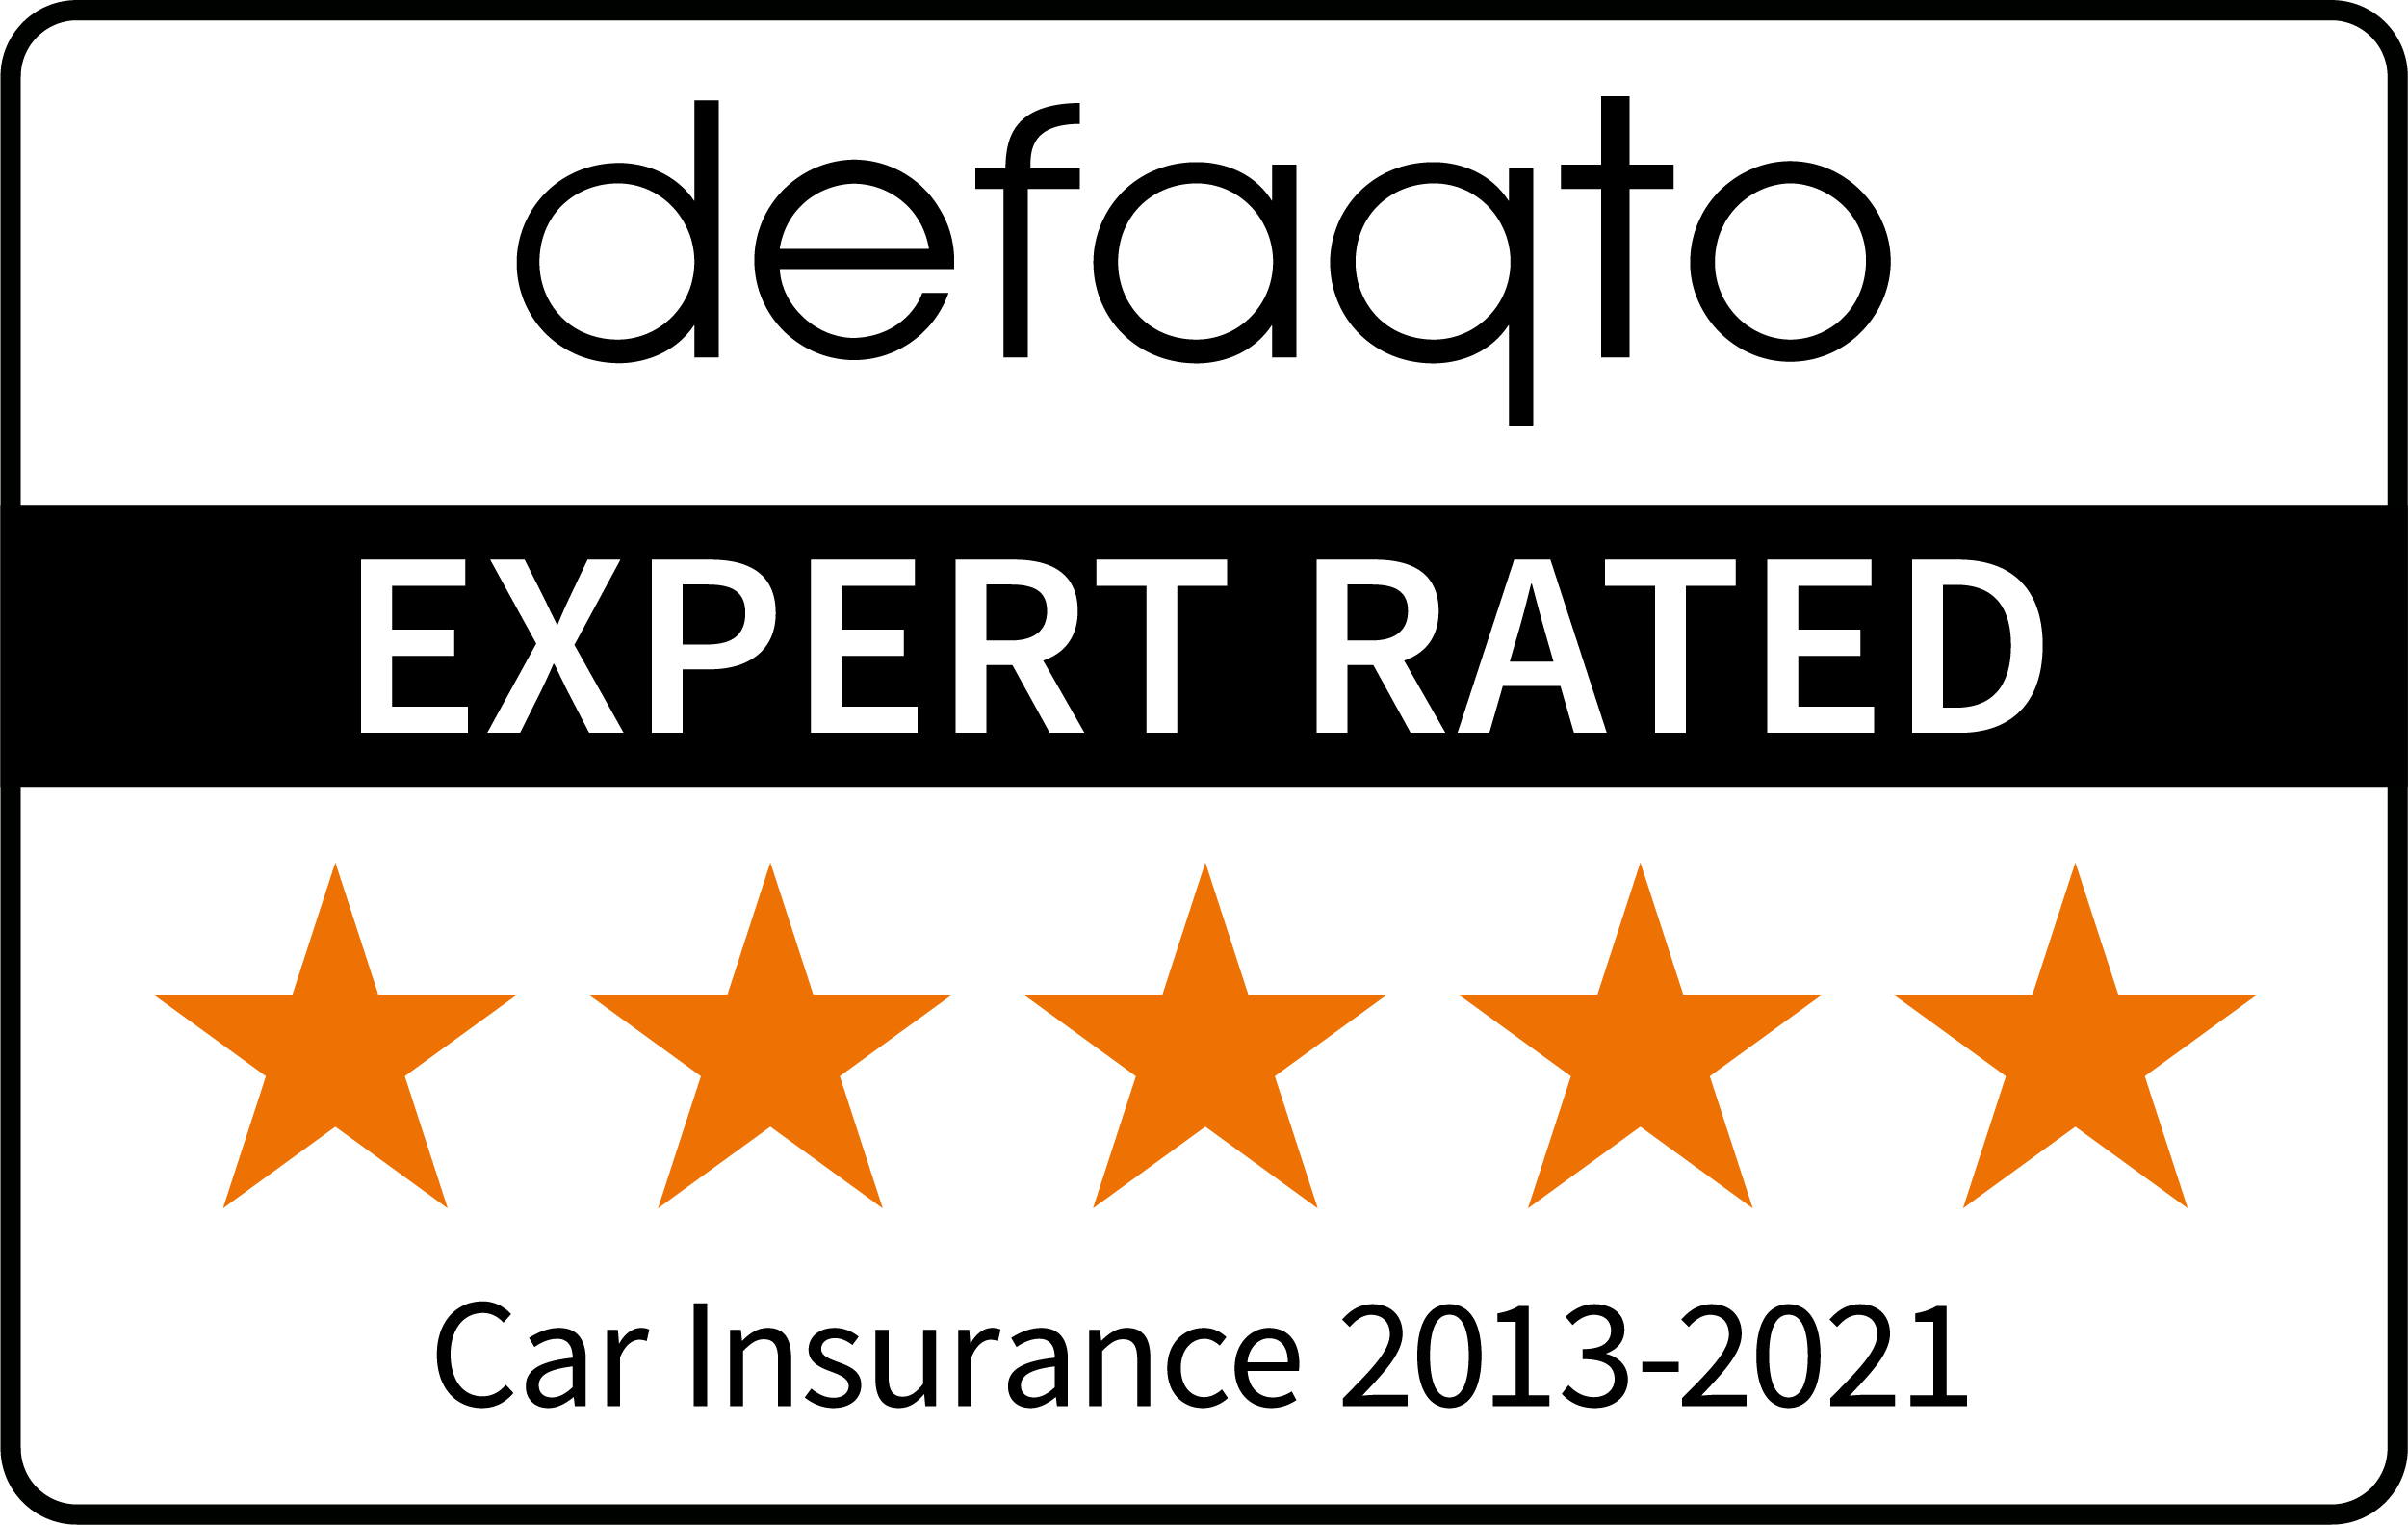 Defaqto 5 star rating 2013-2021 car insurance logo